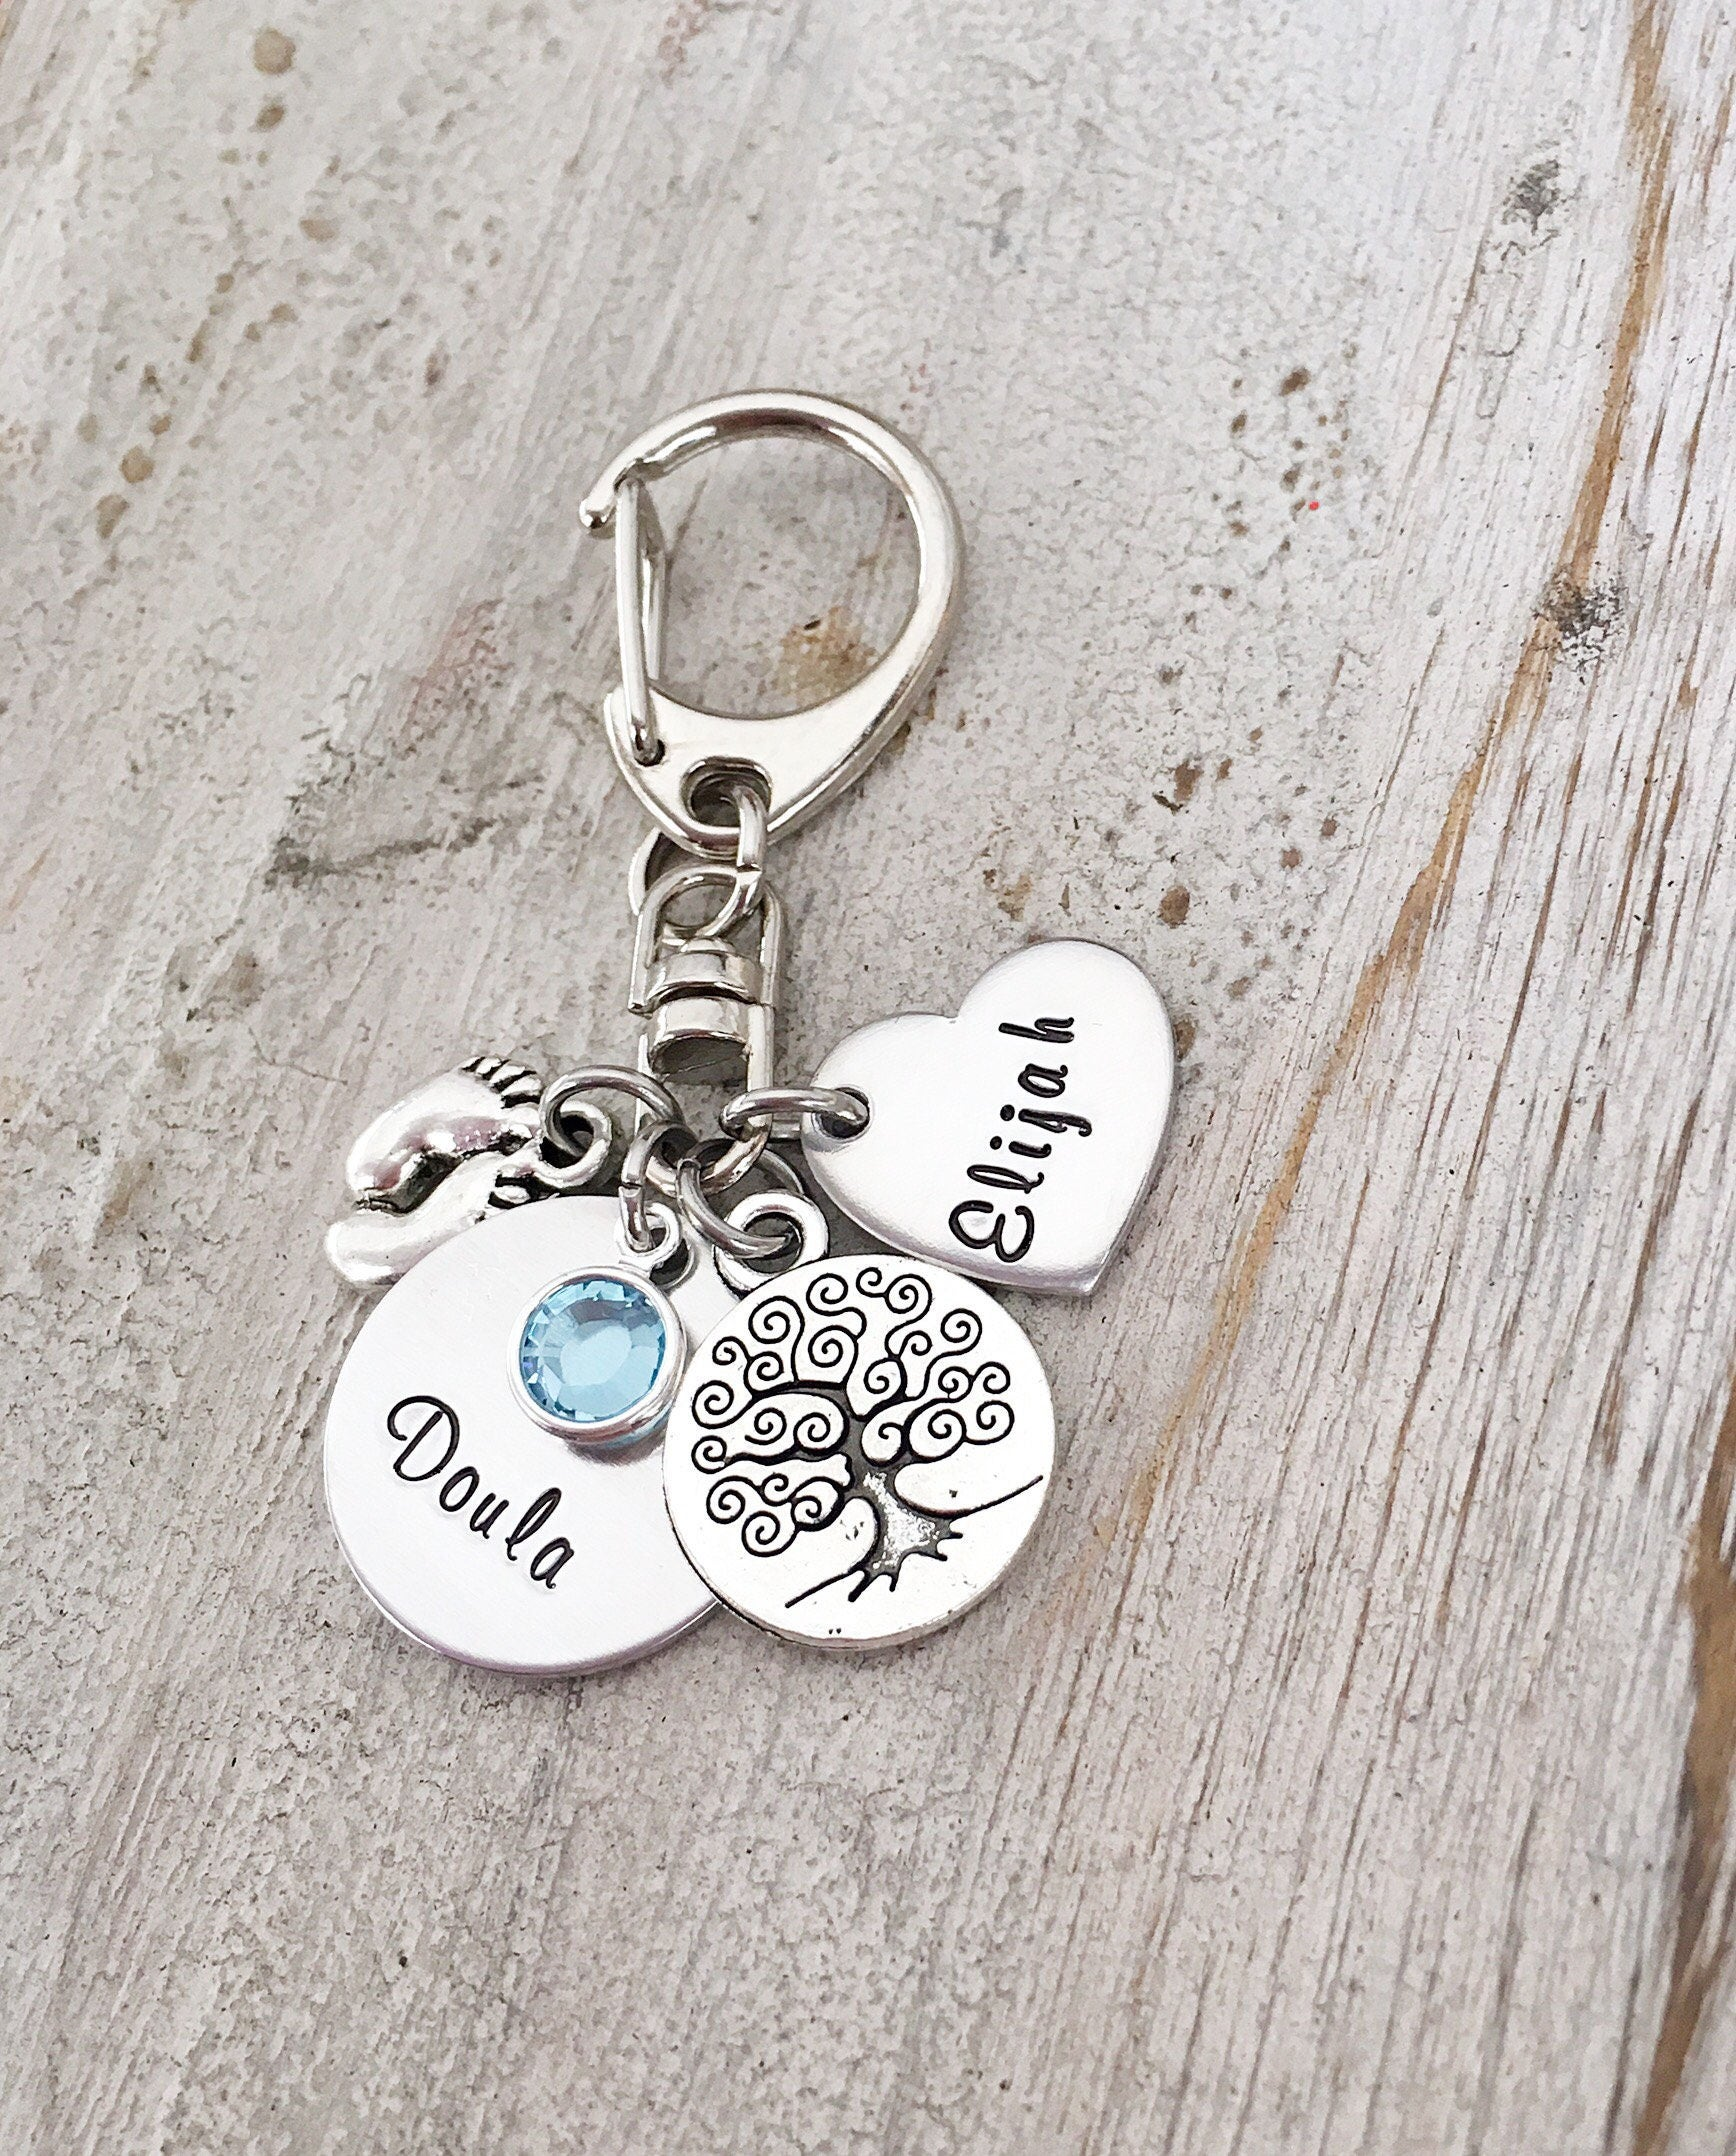 Doula gift birth doula jewelry doula thank you gift zoom aiddatafo Image collections